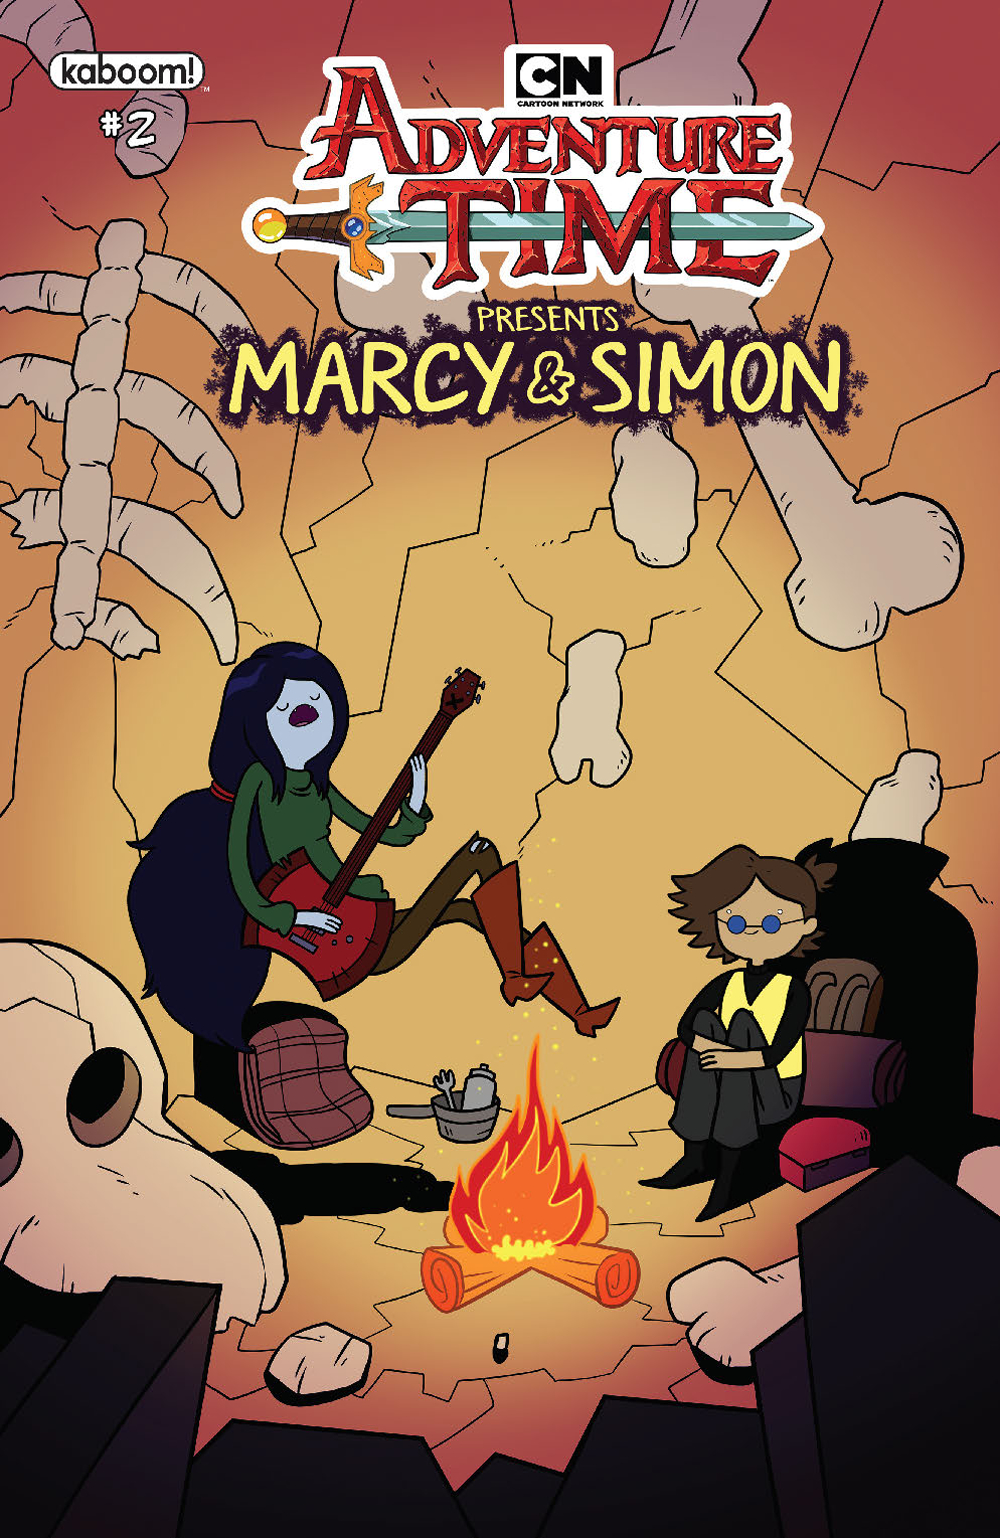 ADVENTURE TIME MARCY & SIMON #2 (OF 6) MAIN